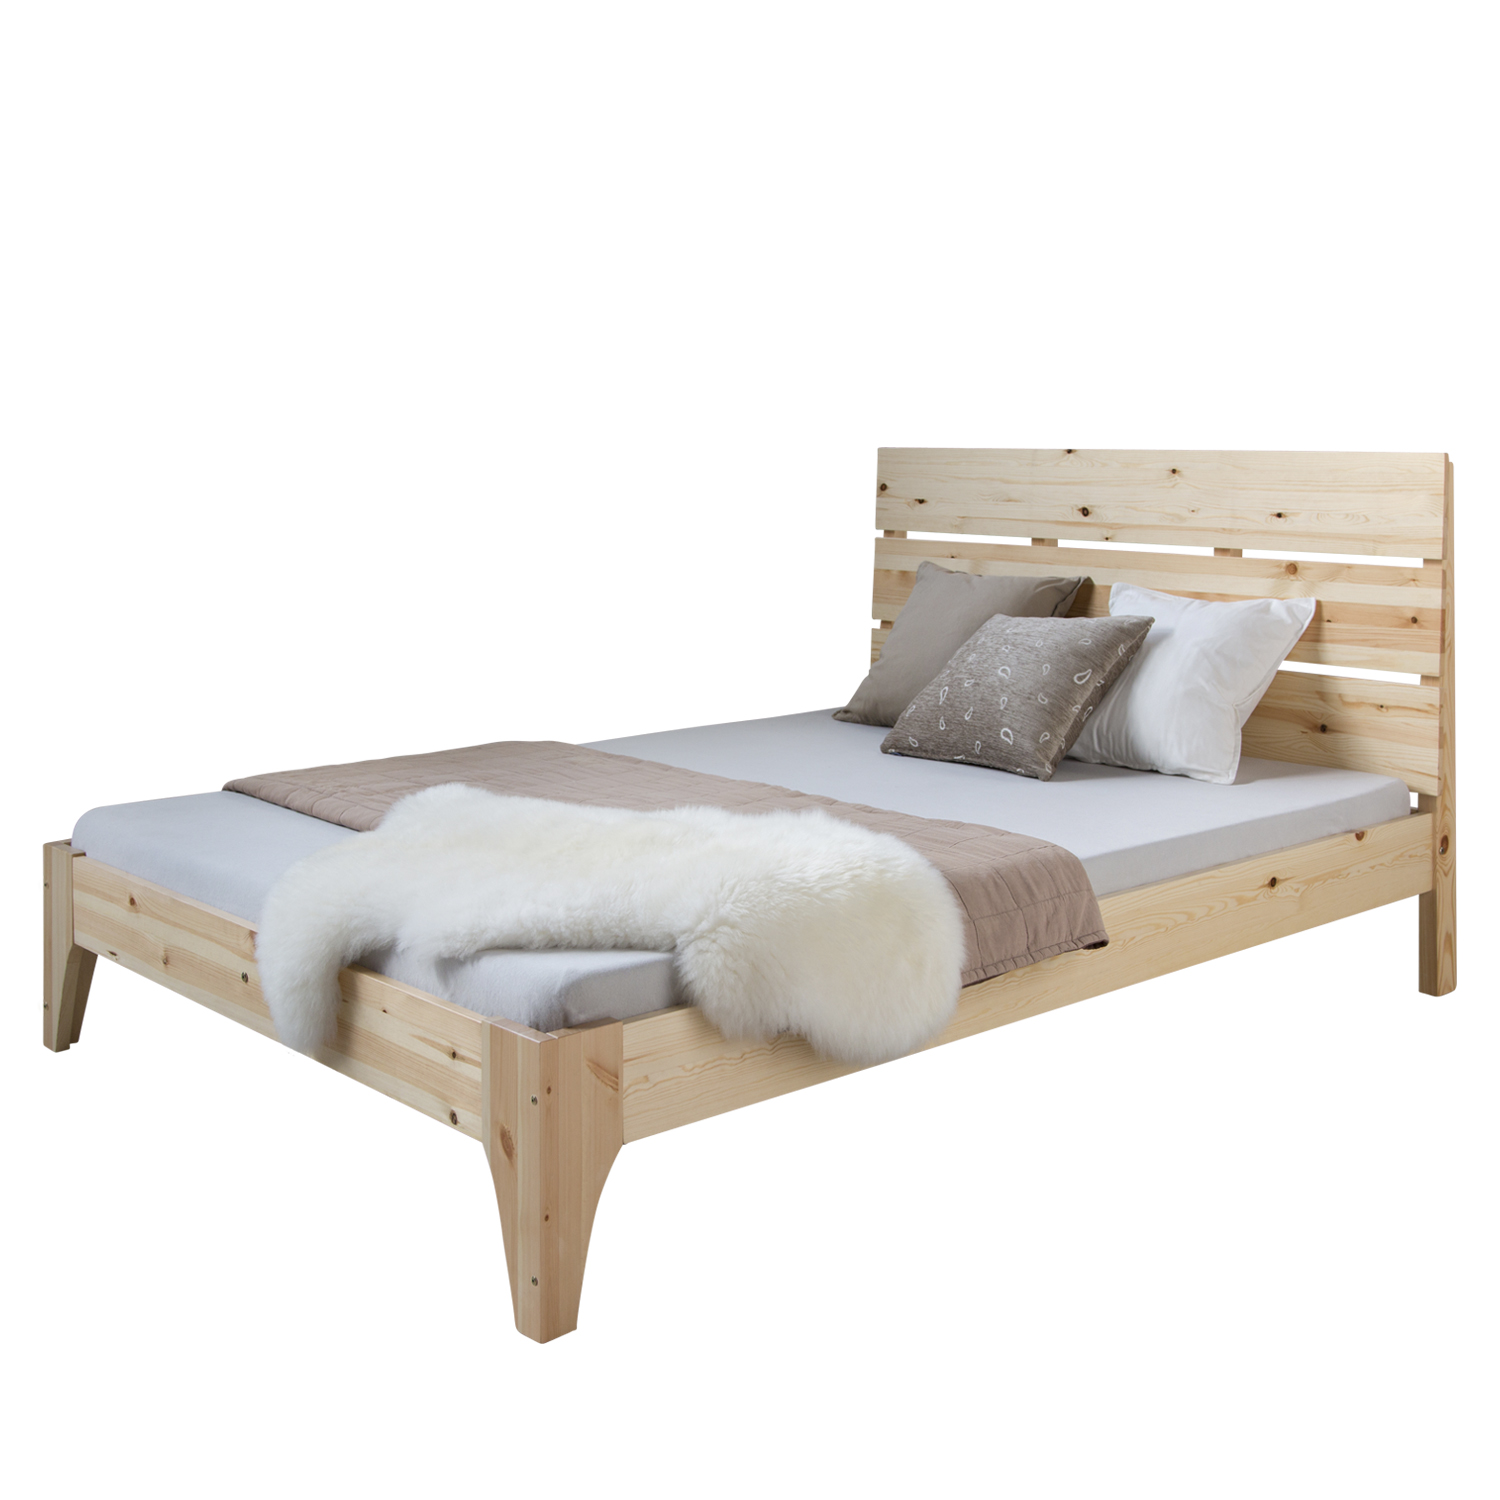 doppelbett holzbett bettgestell futonbett 140x200 holz kiefer bett massivholz ebay. Black Bedroom Furniture Sets. Home Design Ideas